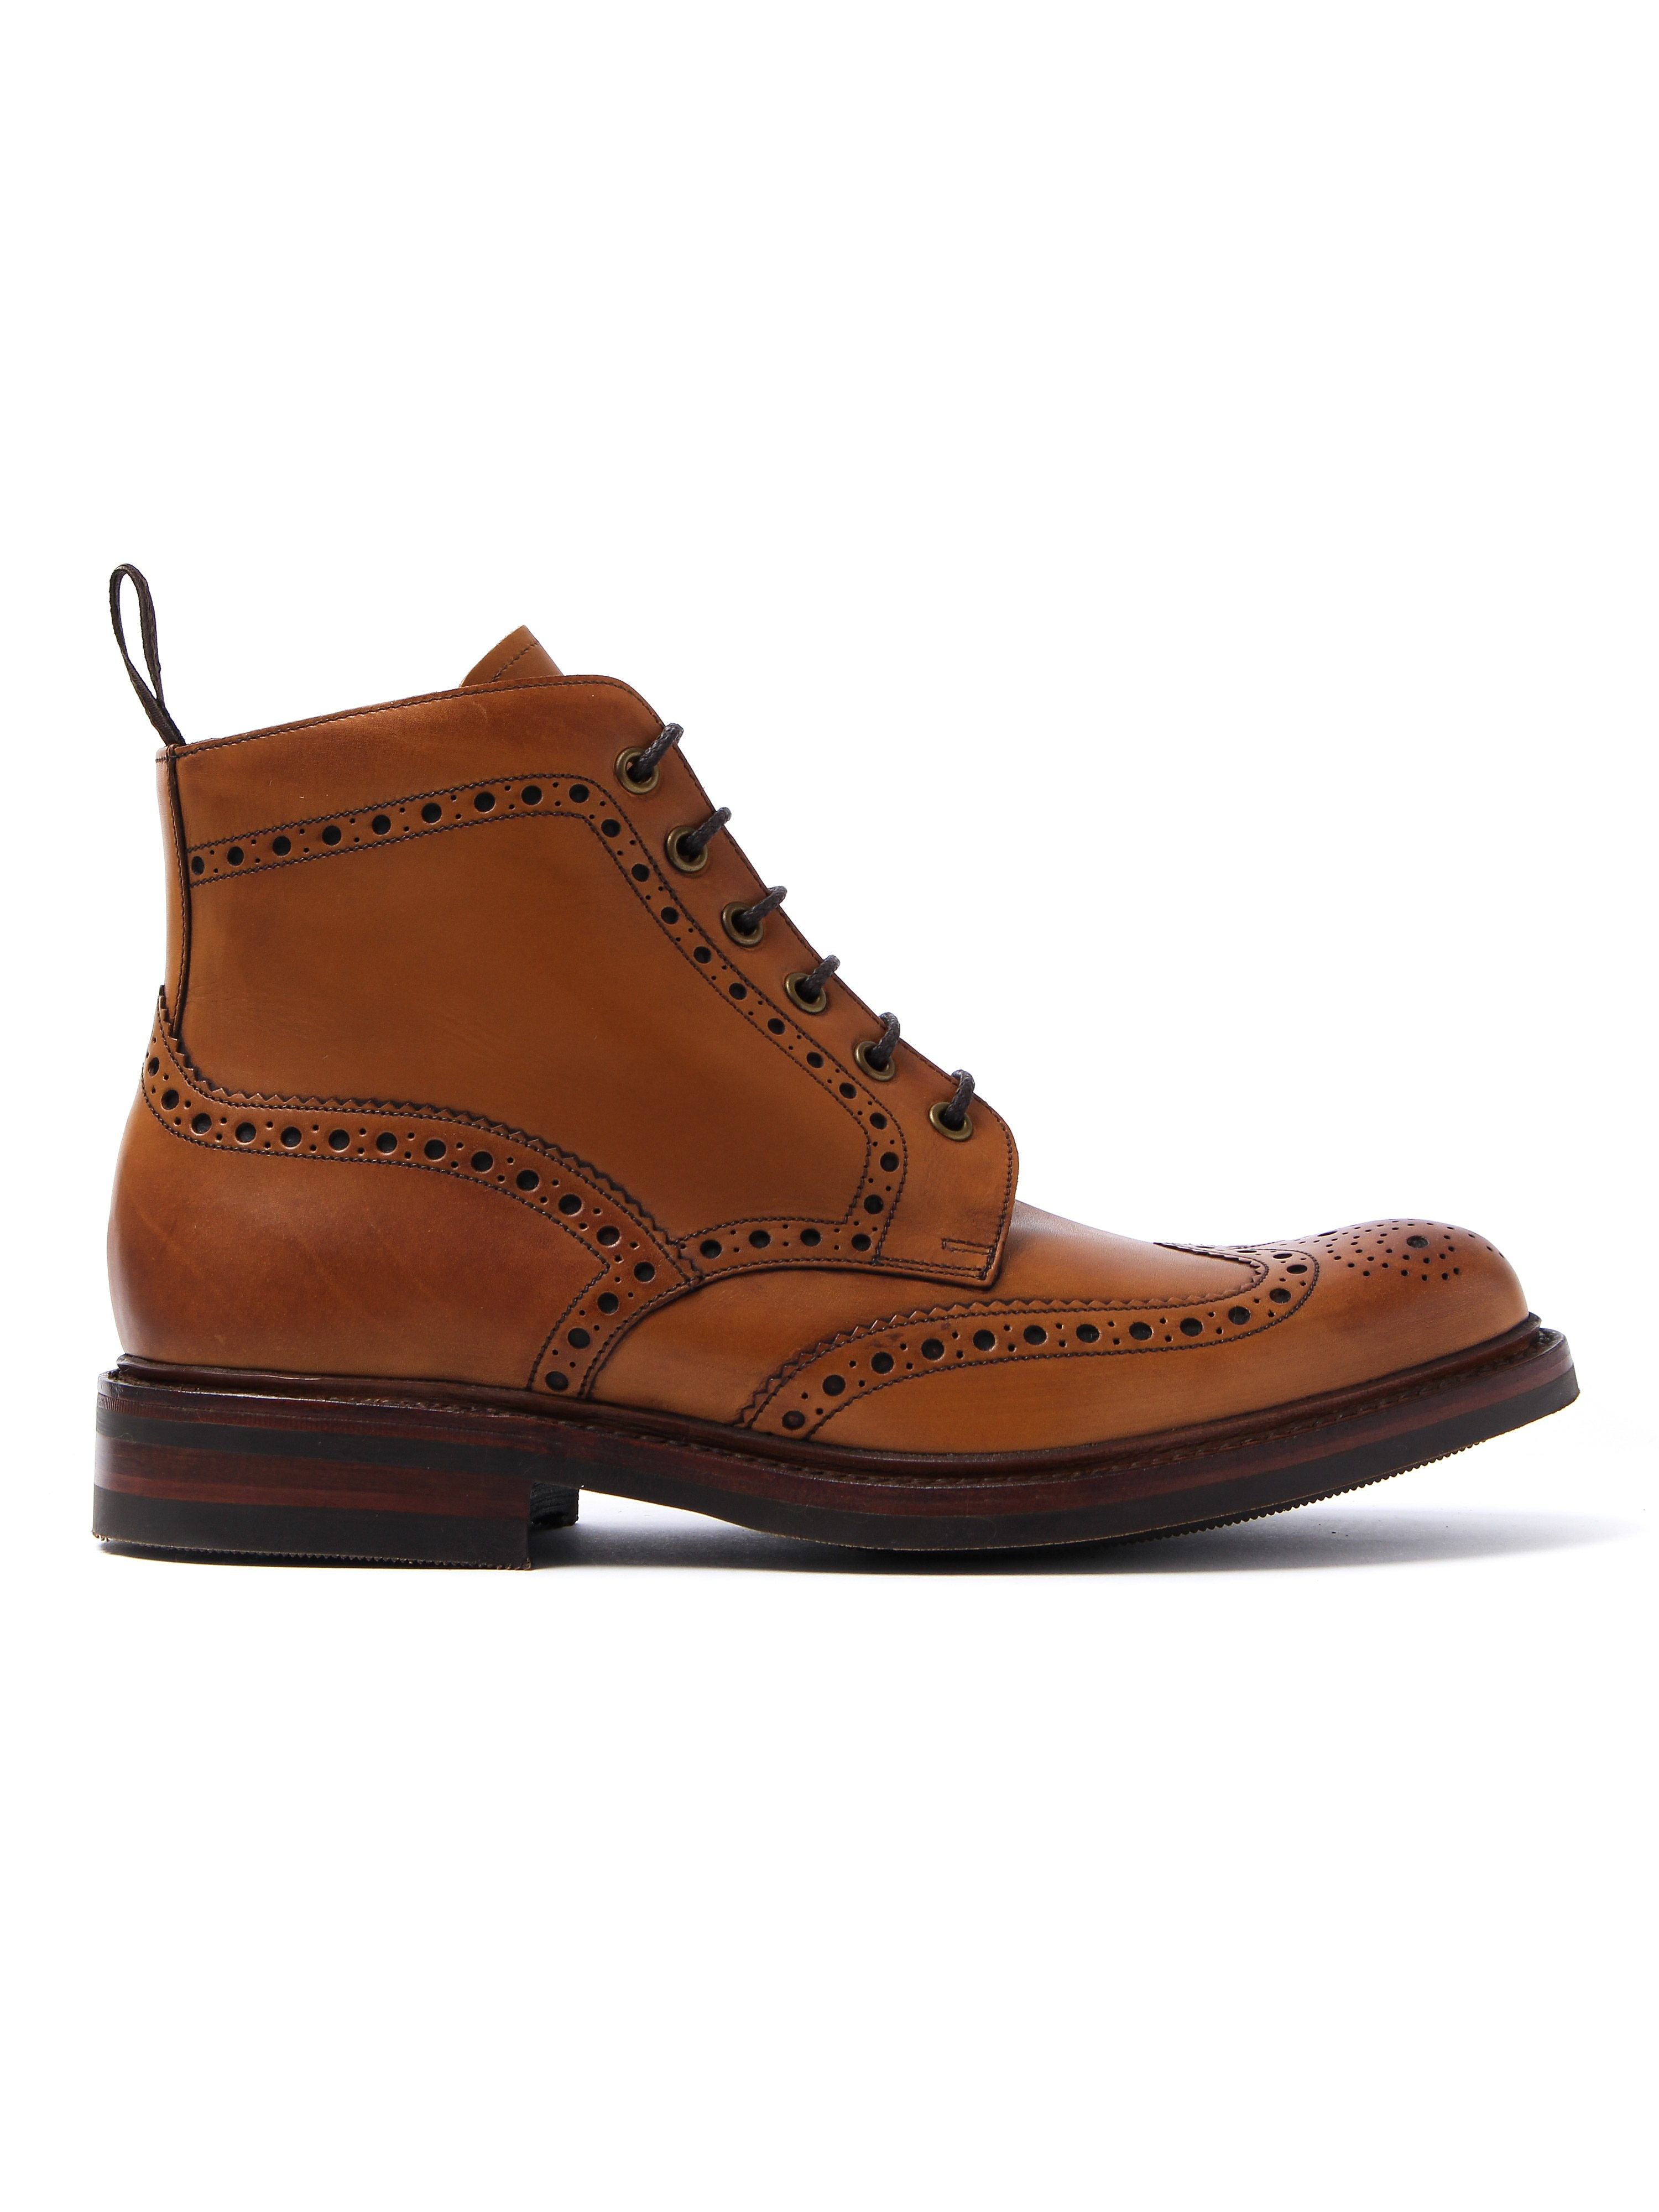 Loake Men's Bedale Brogue Boots - Tan Leather